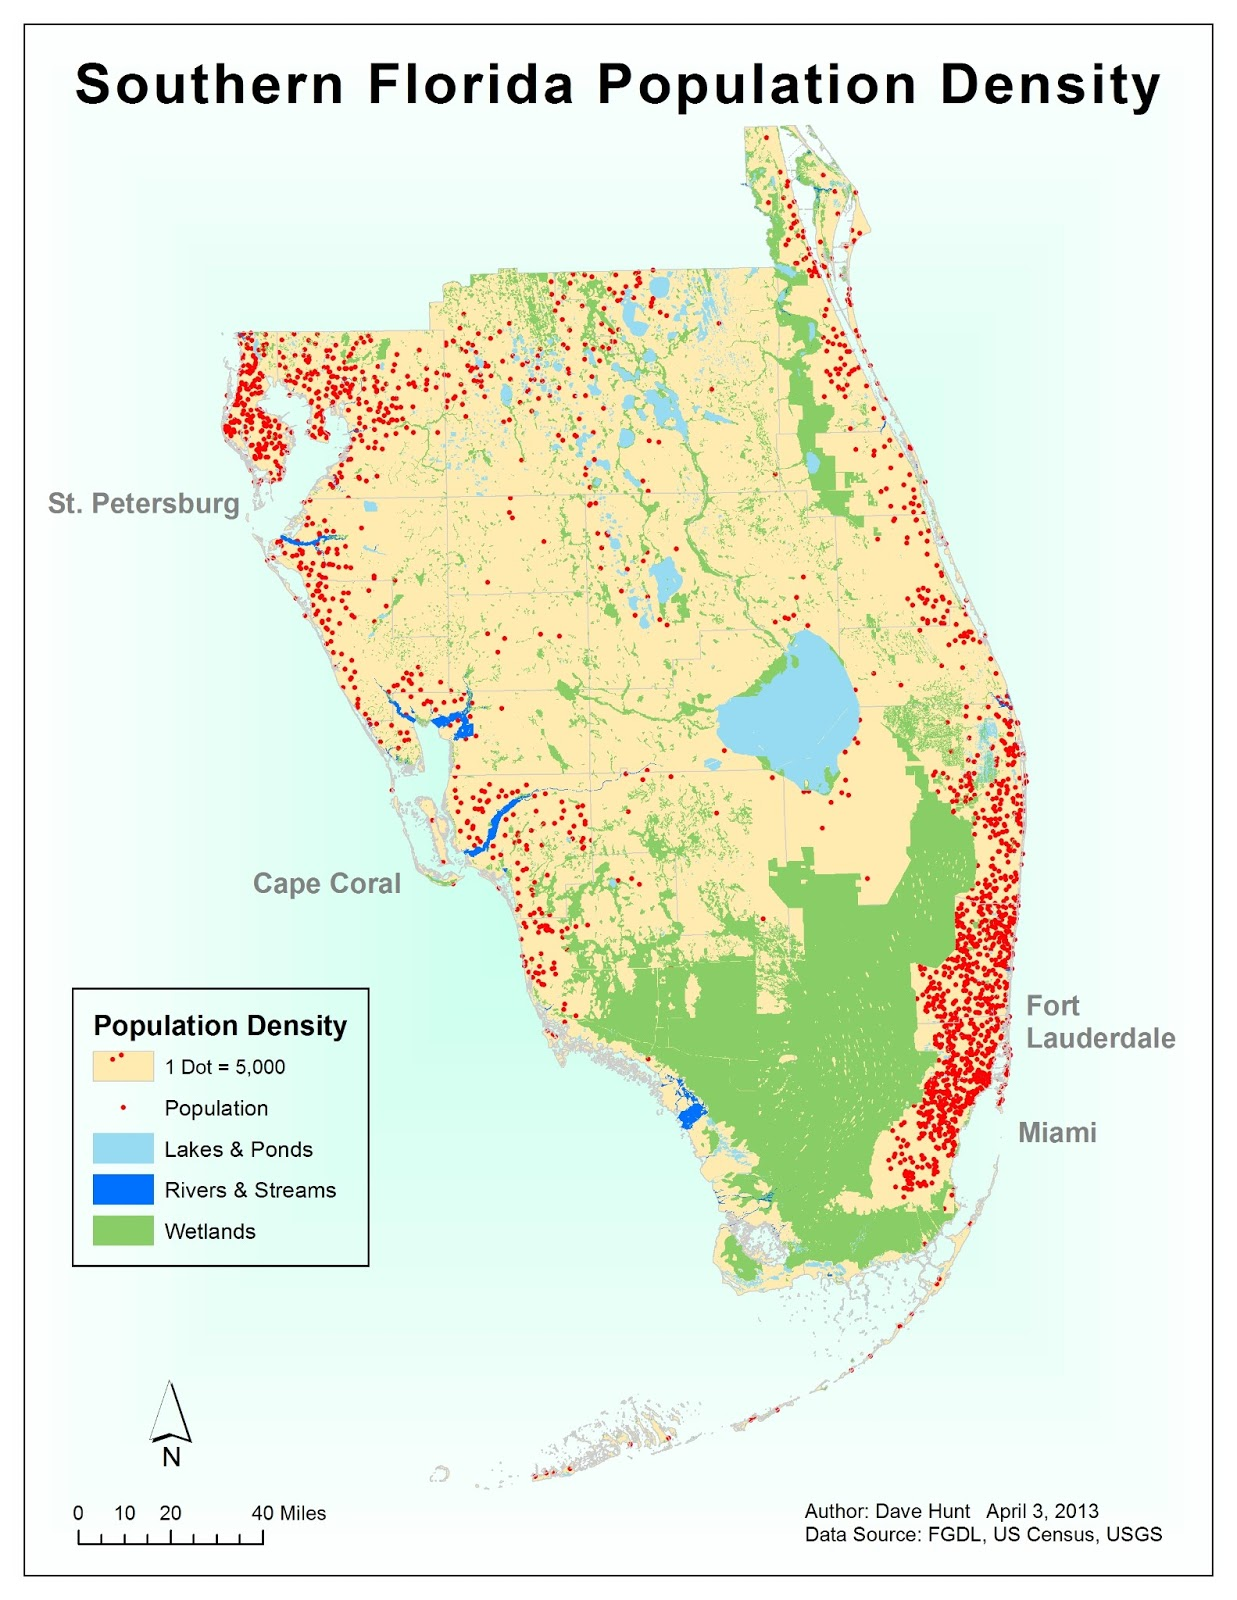 this lab focused on creating dot maps this map shows the population densities of southern florida according to data from the 2000 us census